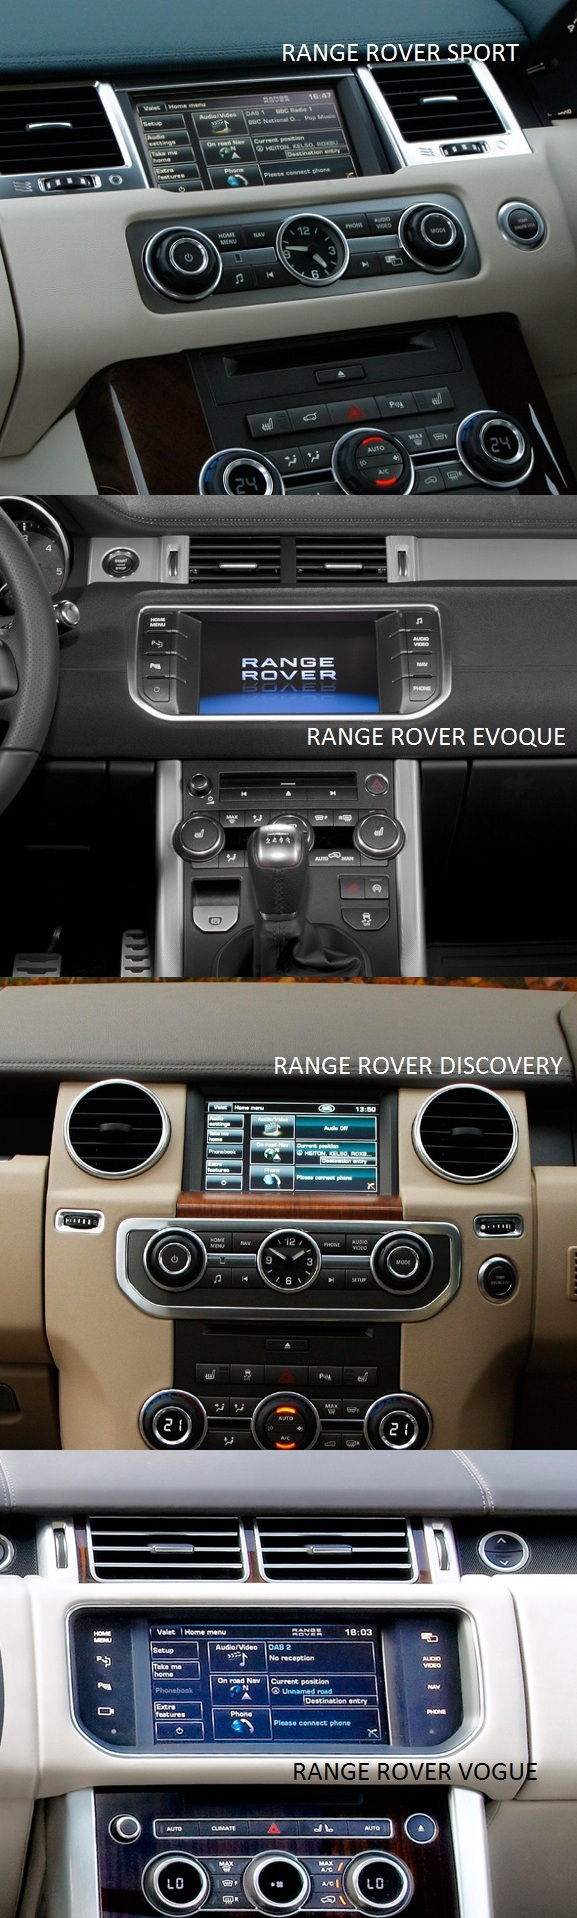 compatibilitate interfata audio video range rover 2012